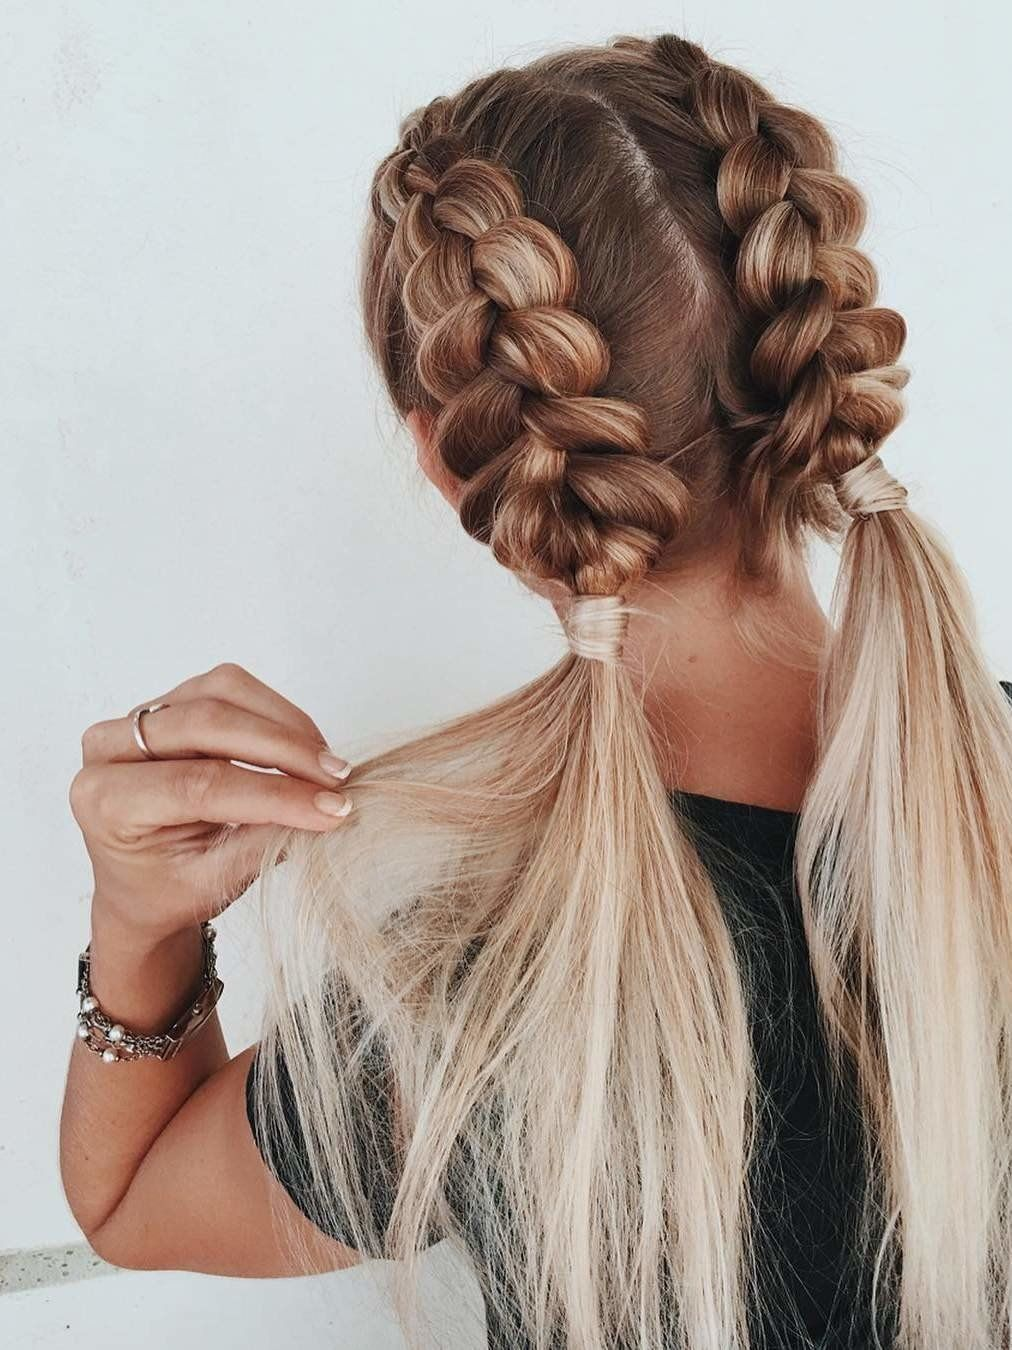 10 Braided Hairstyles That People Are Loving on Pinterest  Hair